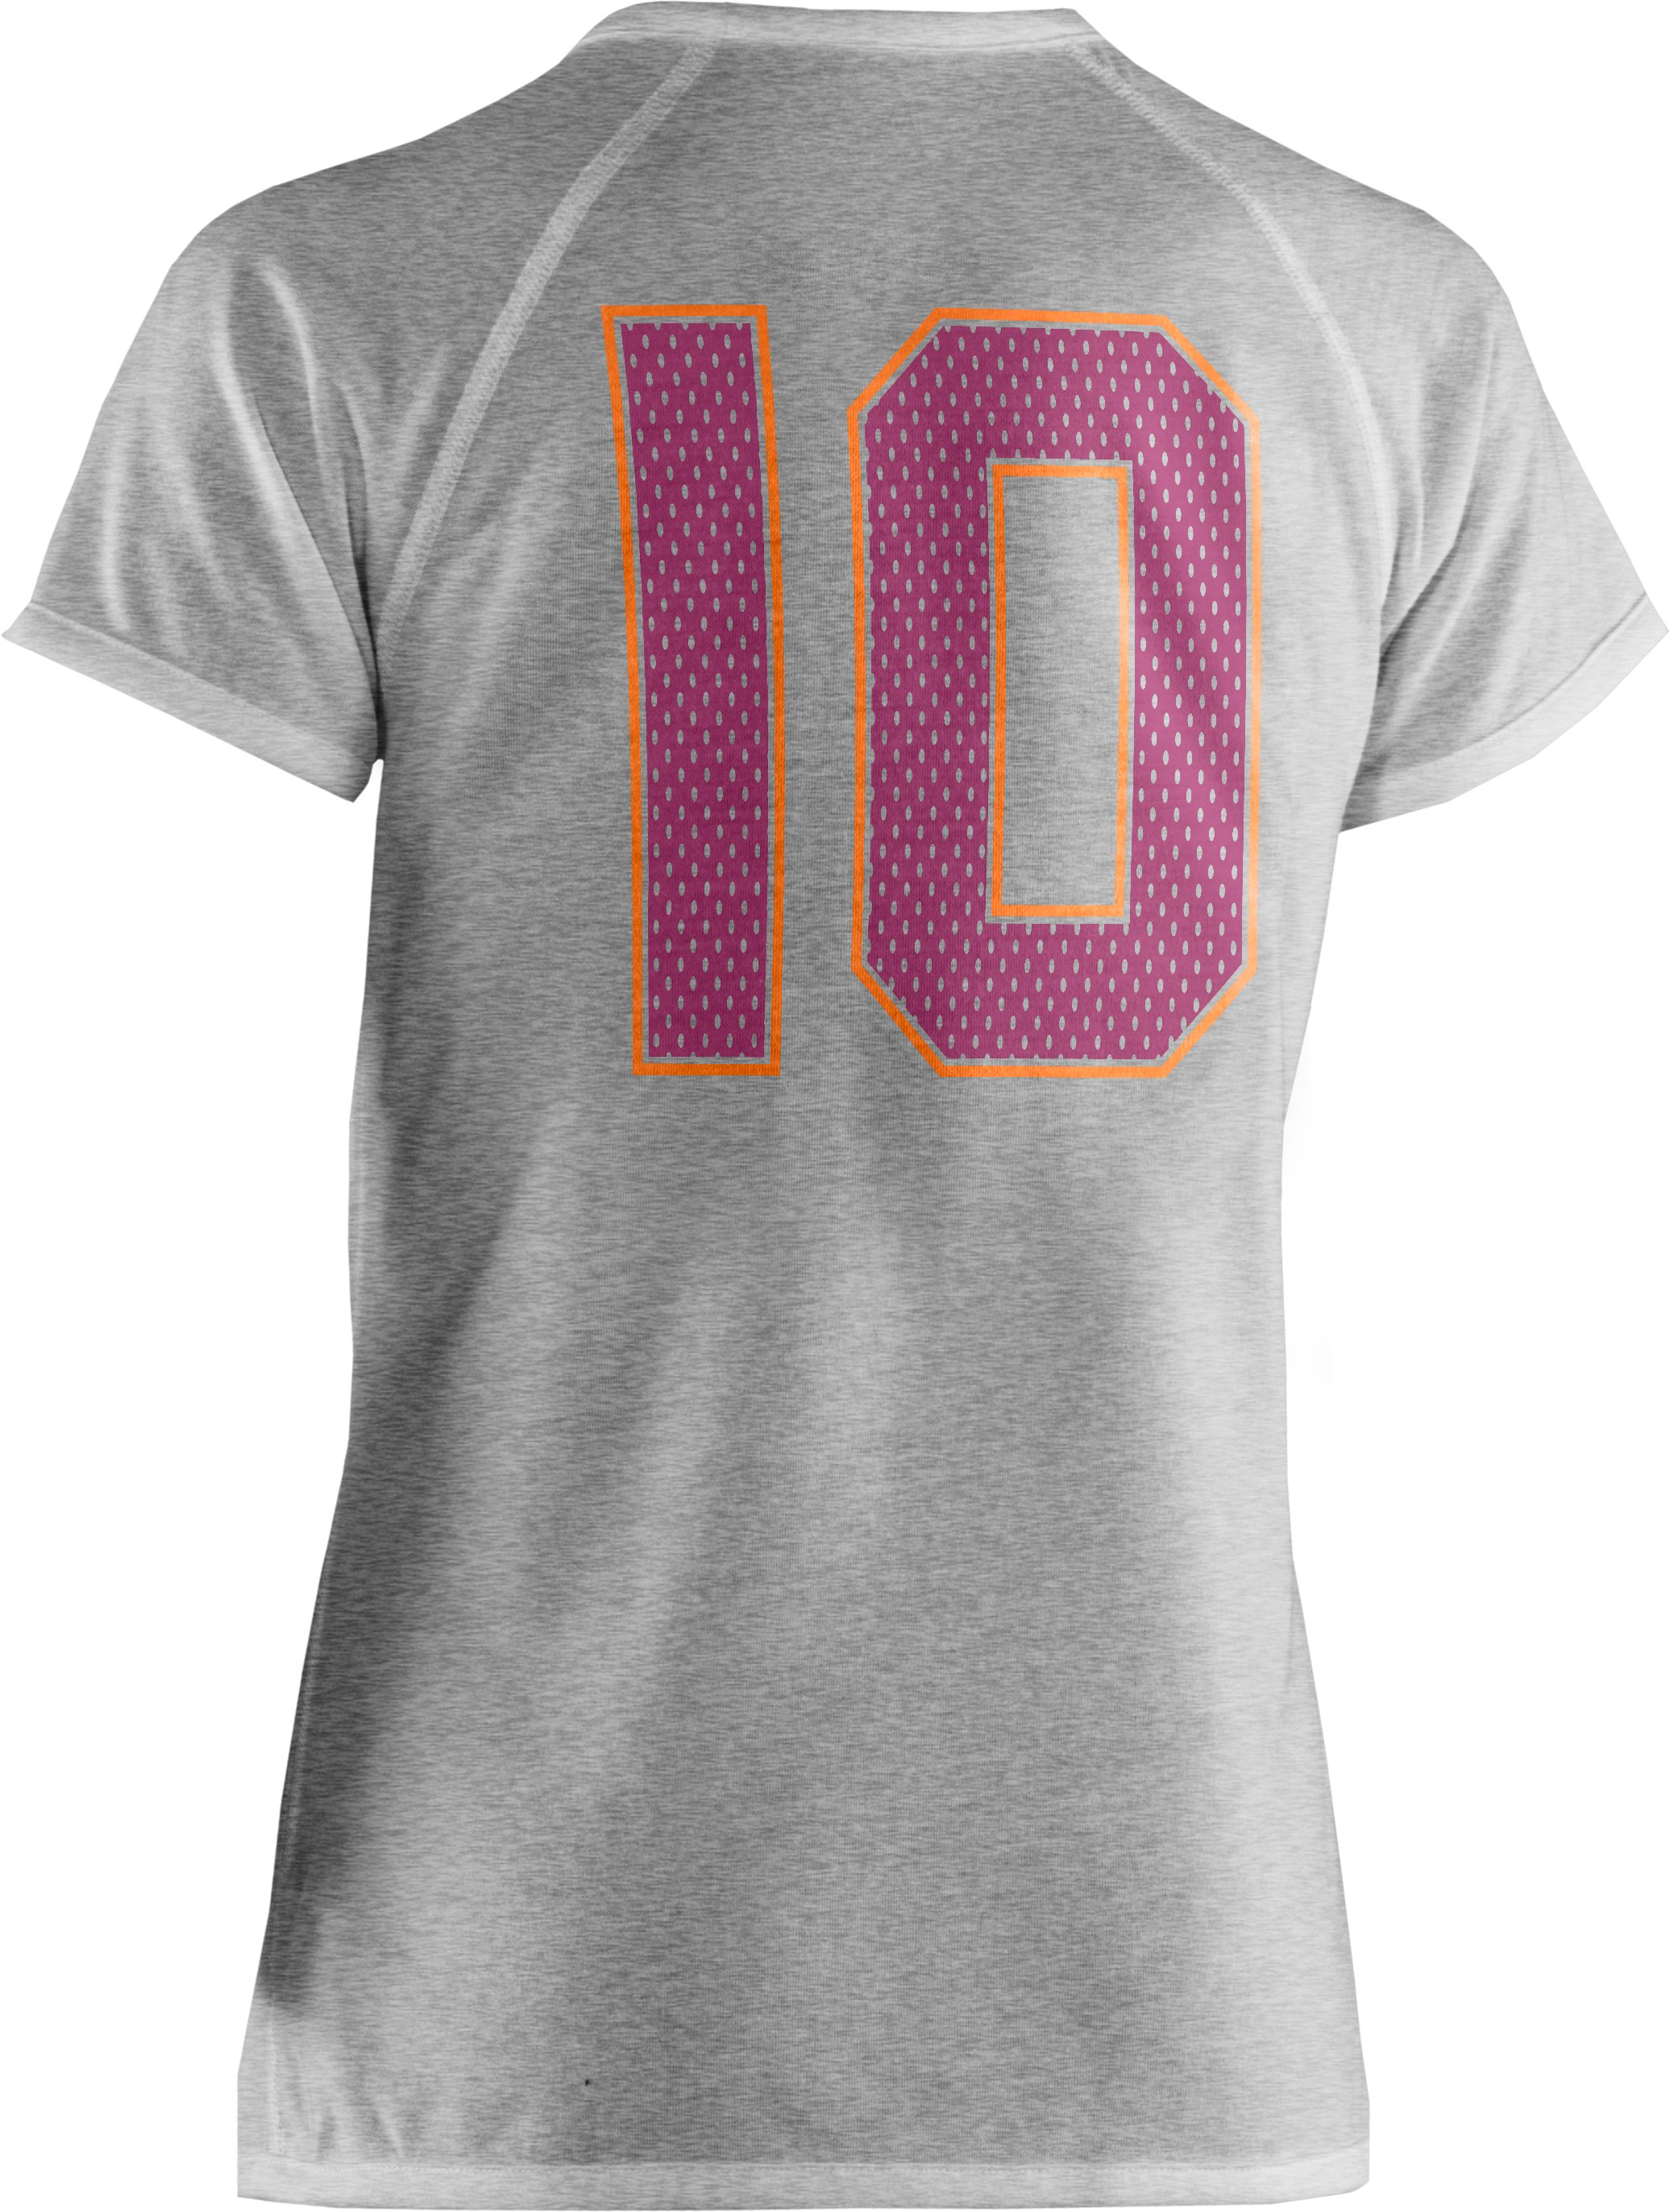 Girls' Reversible Logo Graphic T-Shirt, True Gray Heather